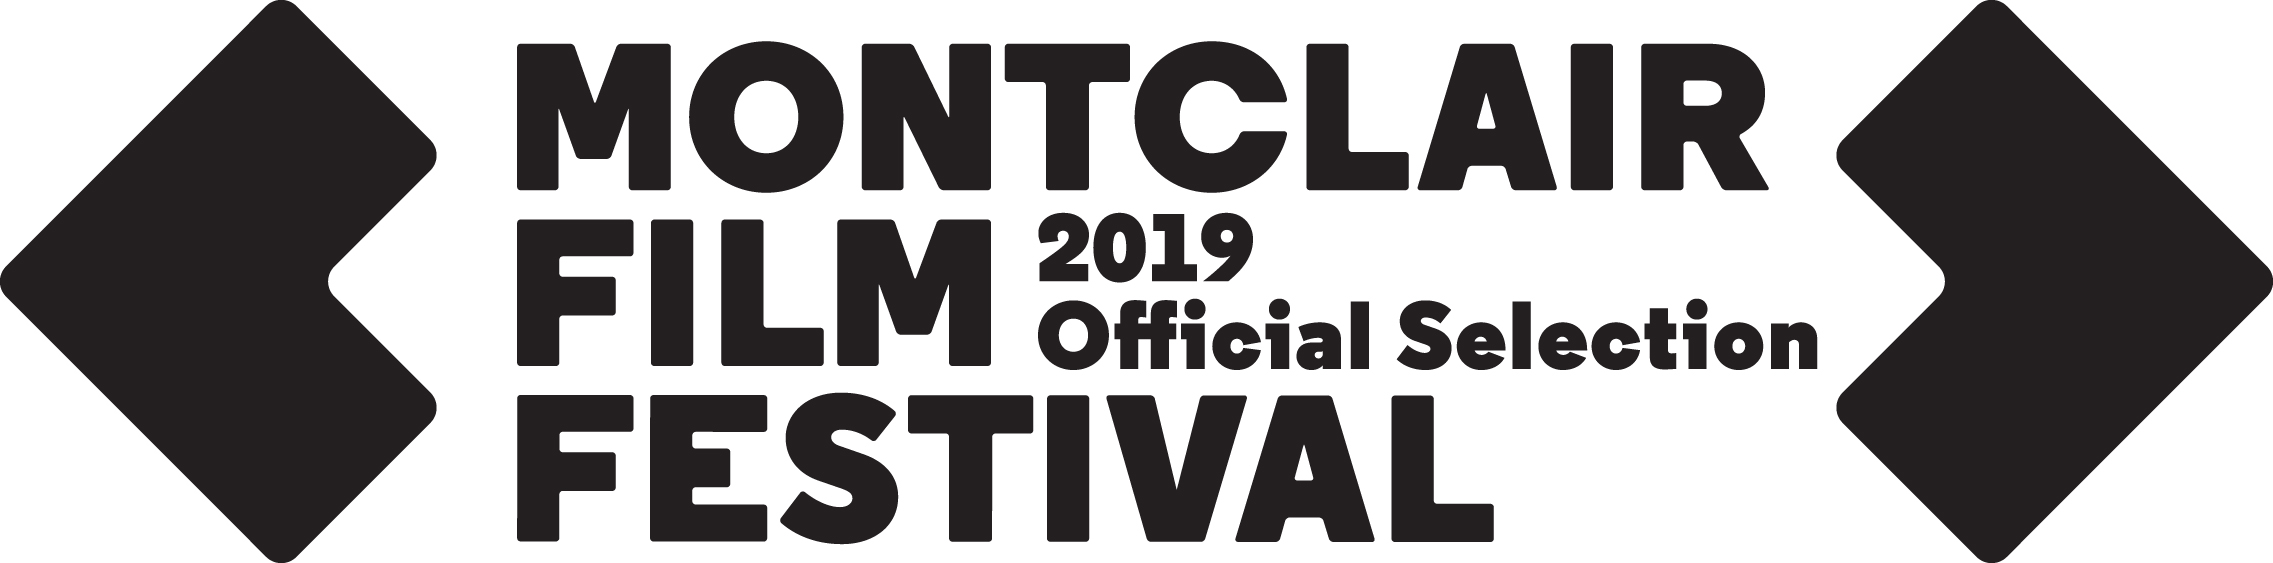 MFF 2019 Official Selection Black.jpg